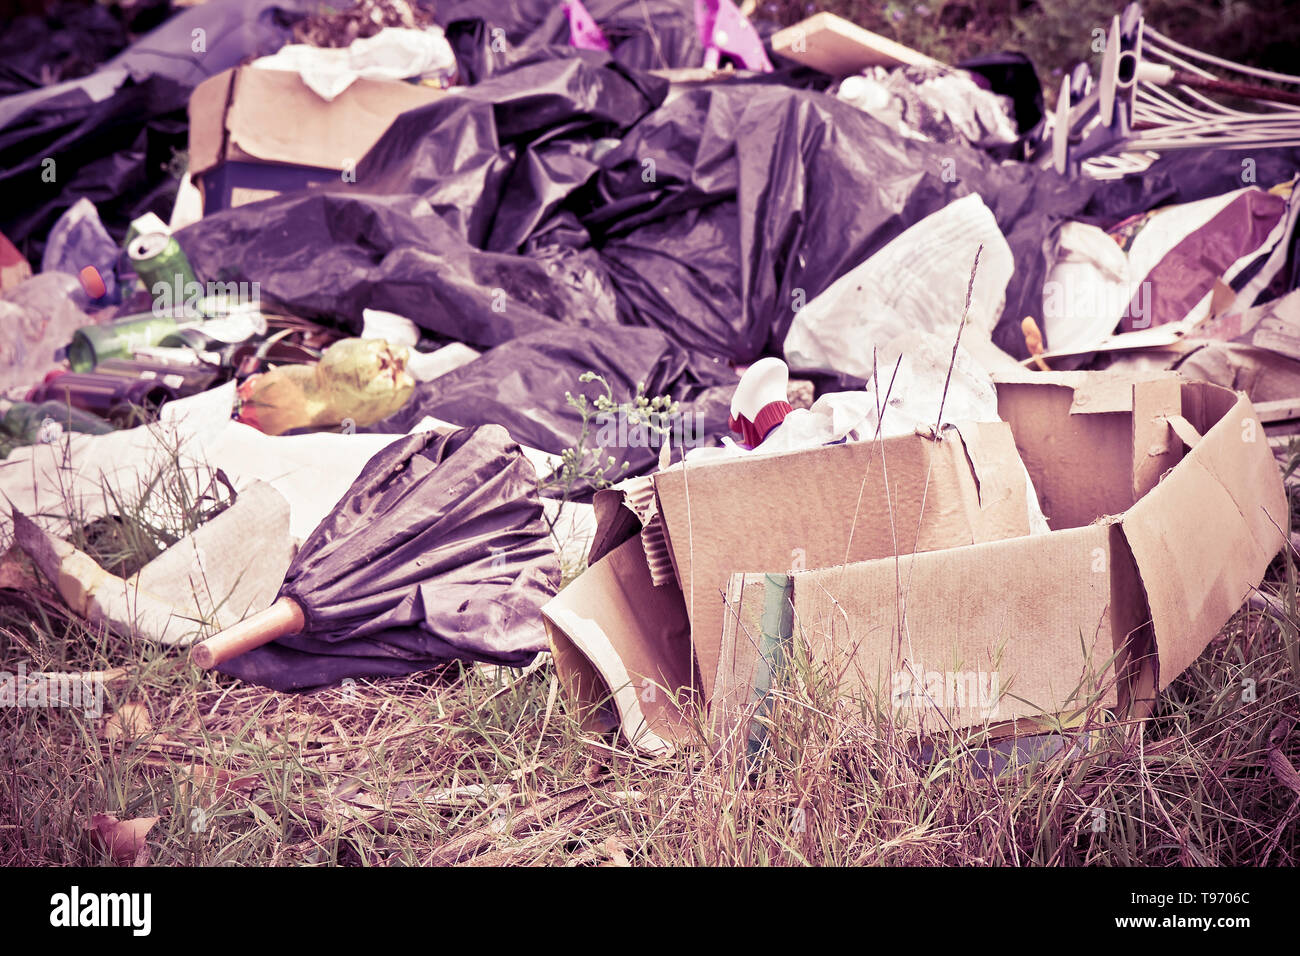 Illegal dumping with bottles, boxes and plastic bags abandoned in nature - Stock Image